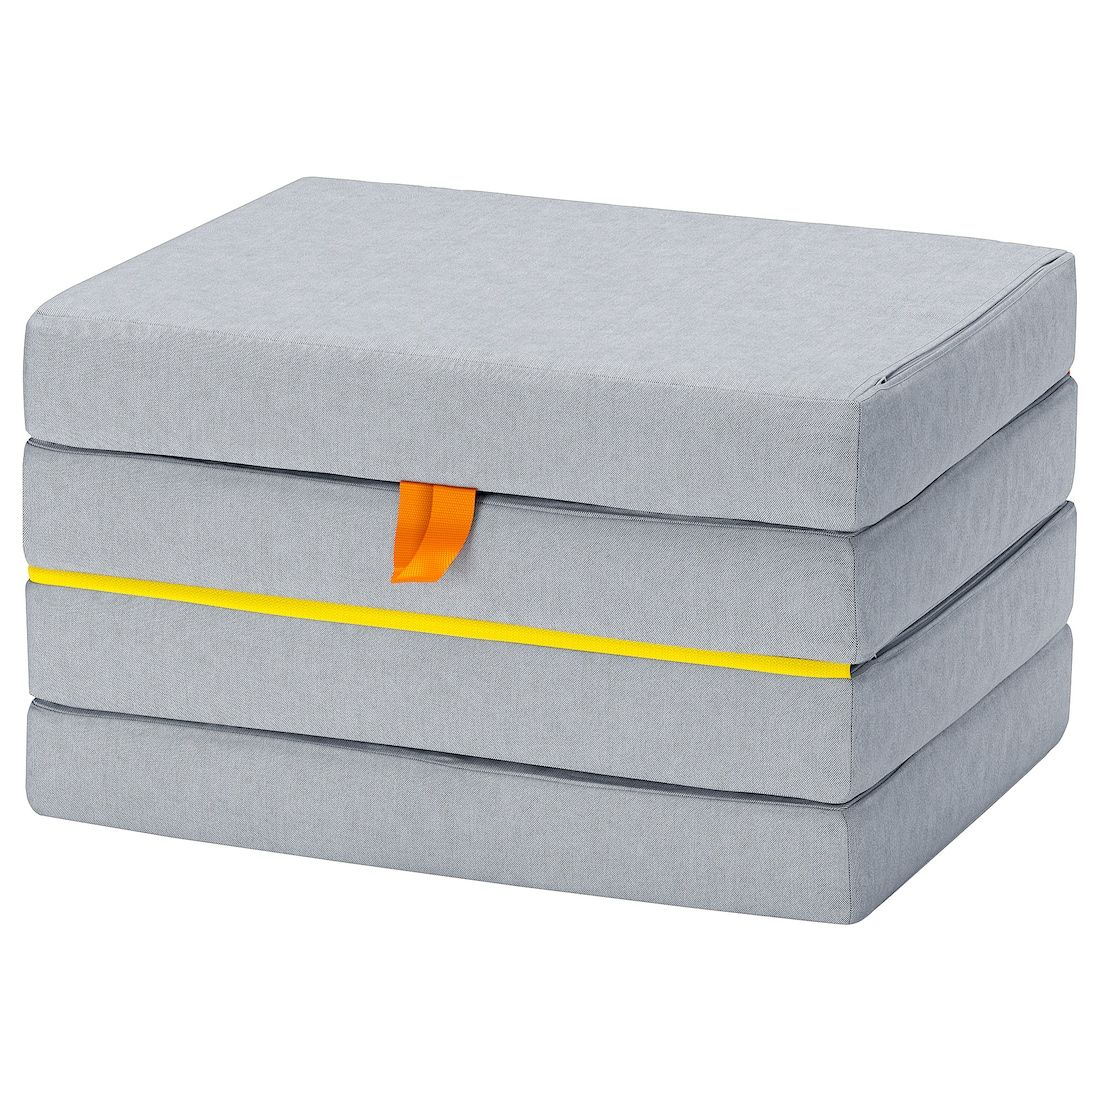 SLÄKT Mattress, folding Mattress, Ikea, Kid beds